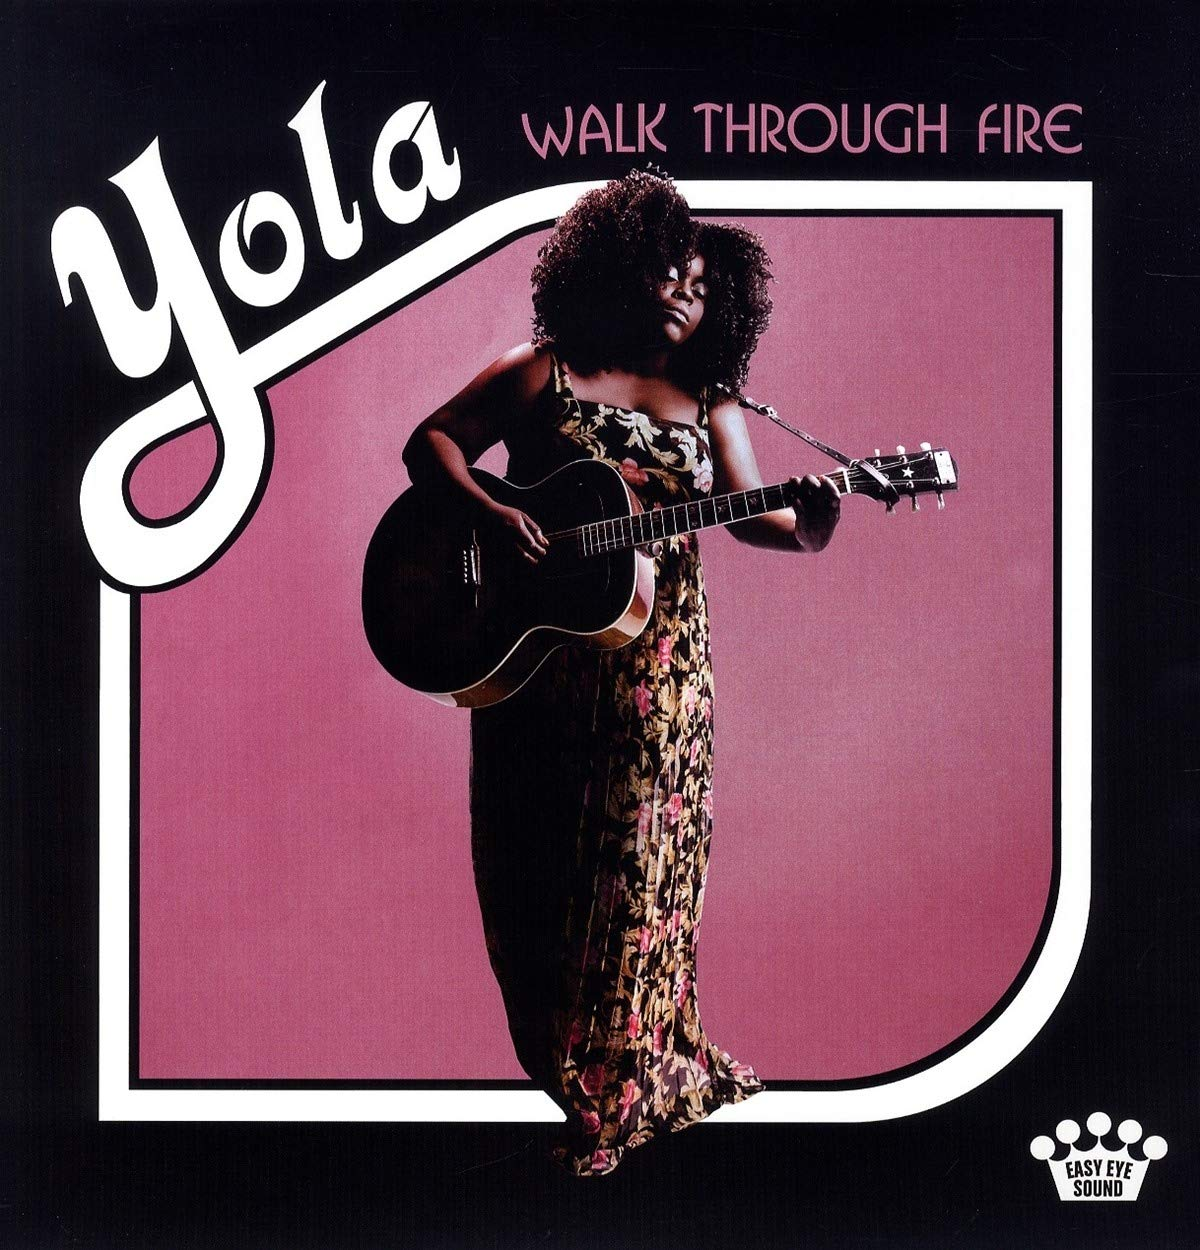 Yola - Walk Through Fire (LP) - Amazon.com Music